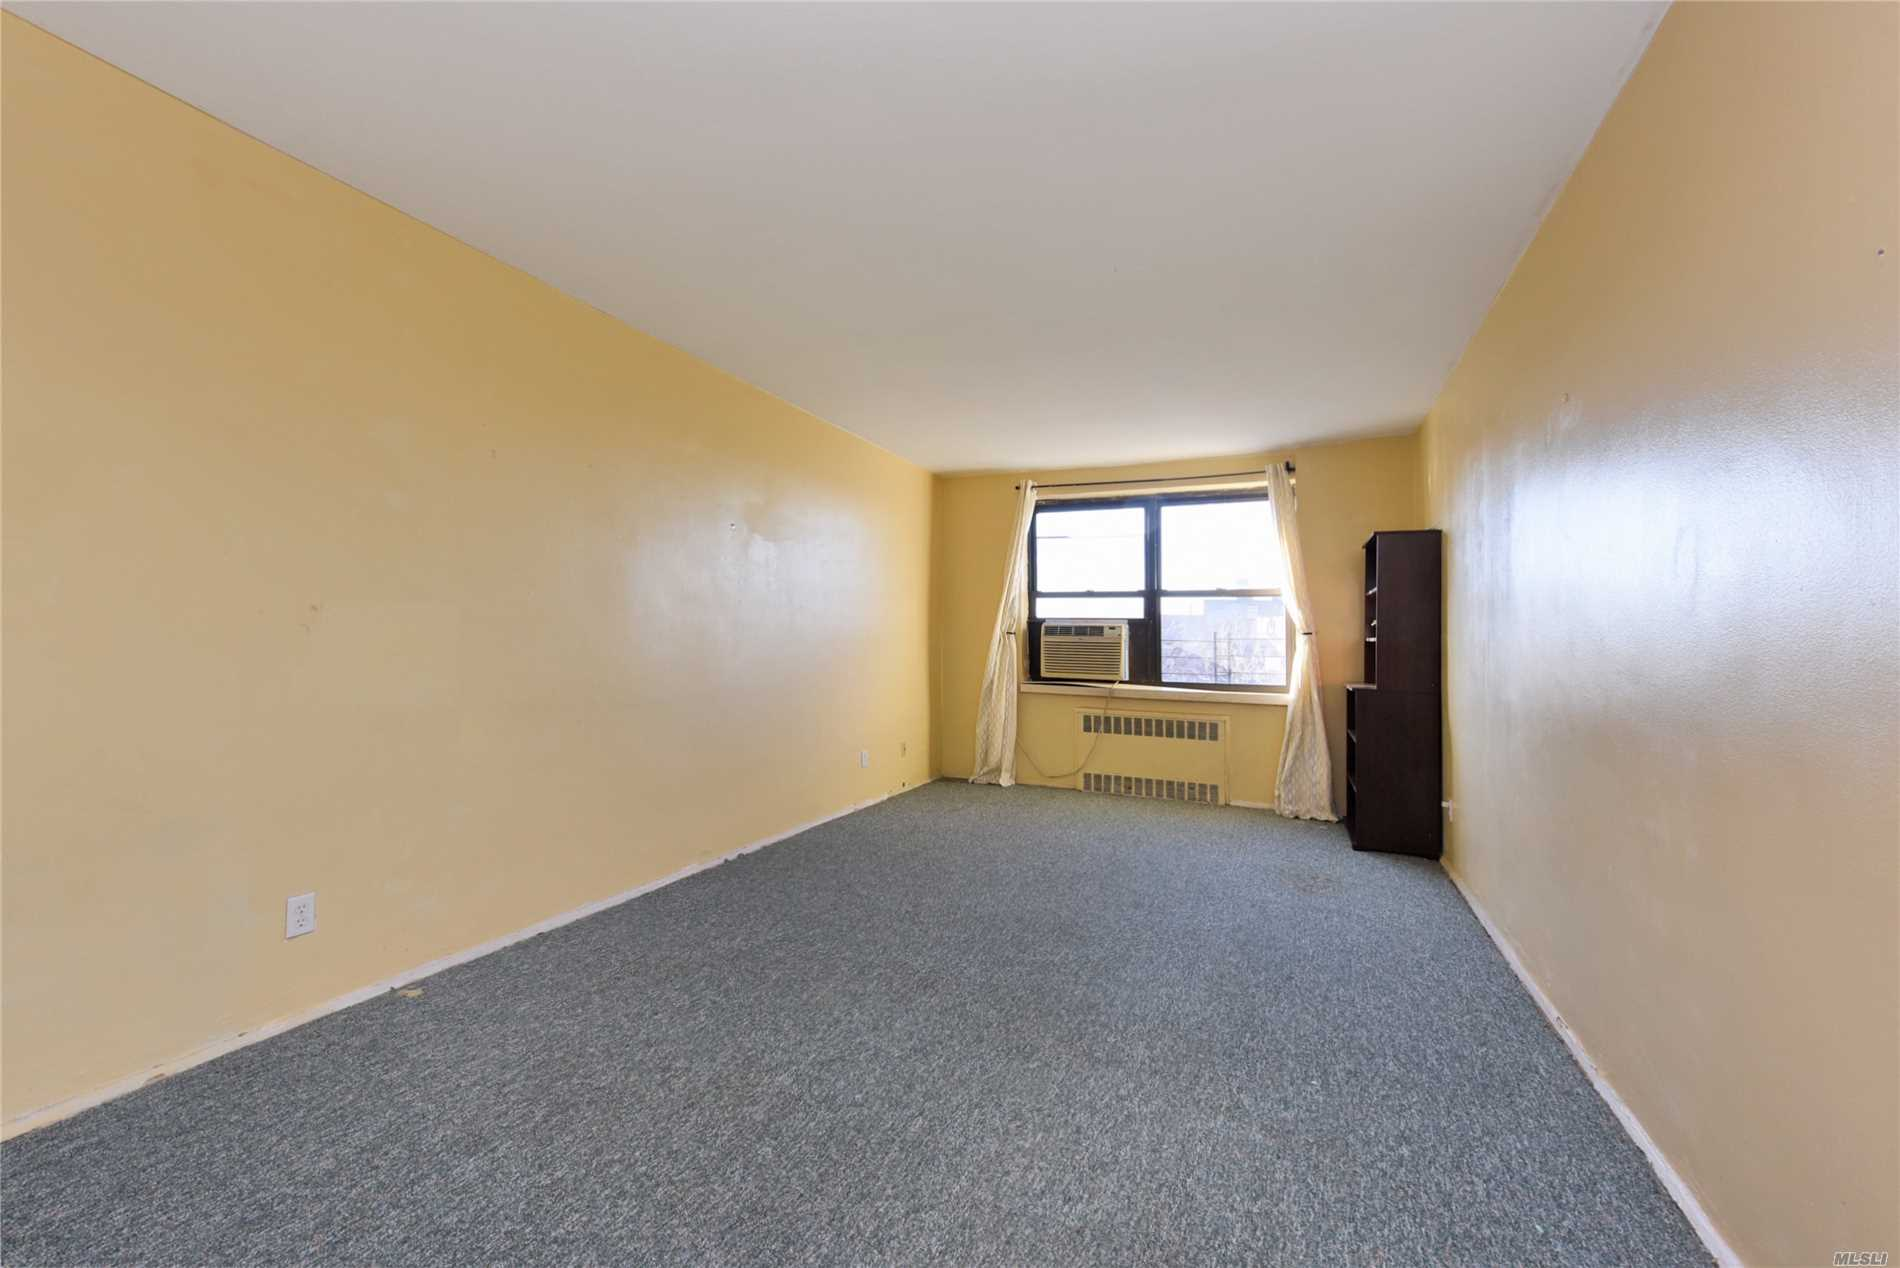 Large Two Bedroom Coop Corner Unit With South- West Exposure, Updated Kitchen With Dual Side Cabinet And Countertop, Tank Style Toilet Bathroom , Lot Of Closets For Storage, Extra Large Master Bedroom With Windows Facing South, , Low Maintenance Include All Utilities. Outdoor Parking Is Available Immediately. Cross Street From Supermarket Shopping Center, Multi-Line Bus Directly To Main St. Flushing And Nyc .Easy Street Parking , Gym, Laundry